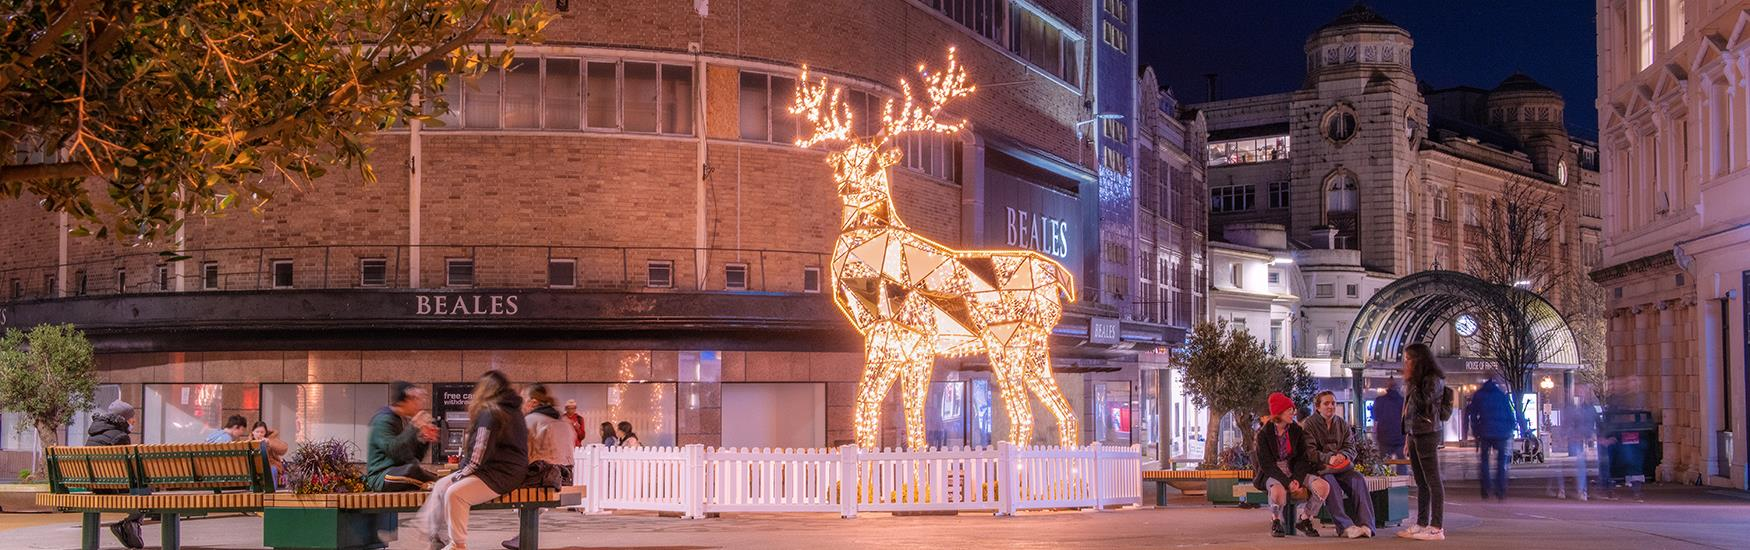 Sparkling reindeer in Beale place at night with street decorations